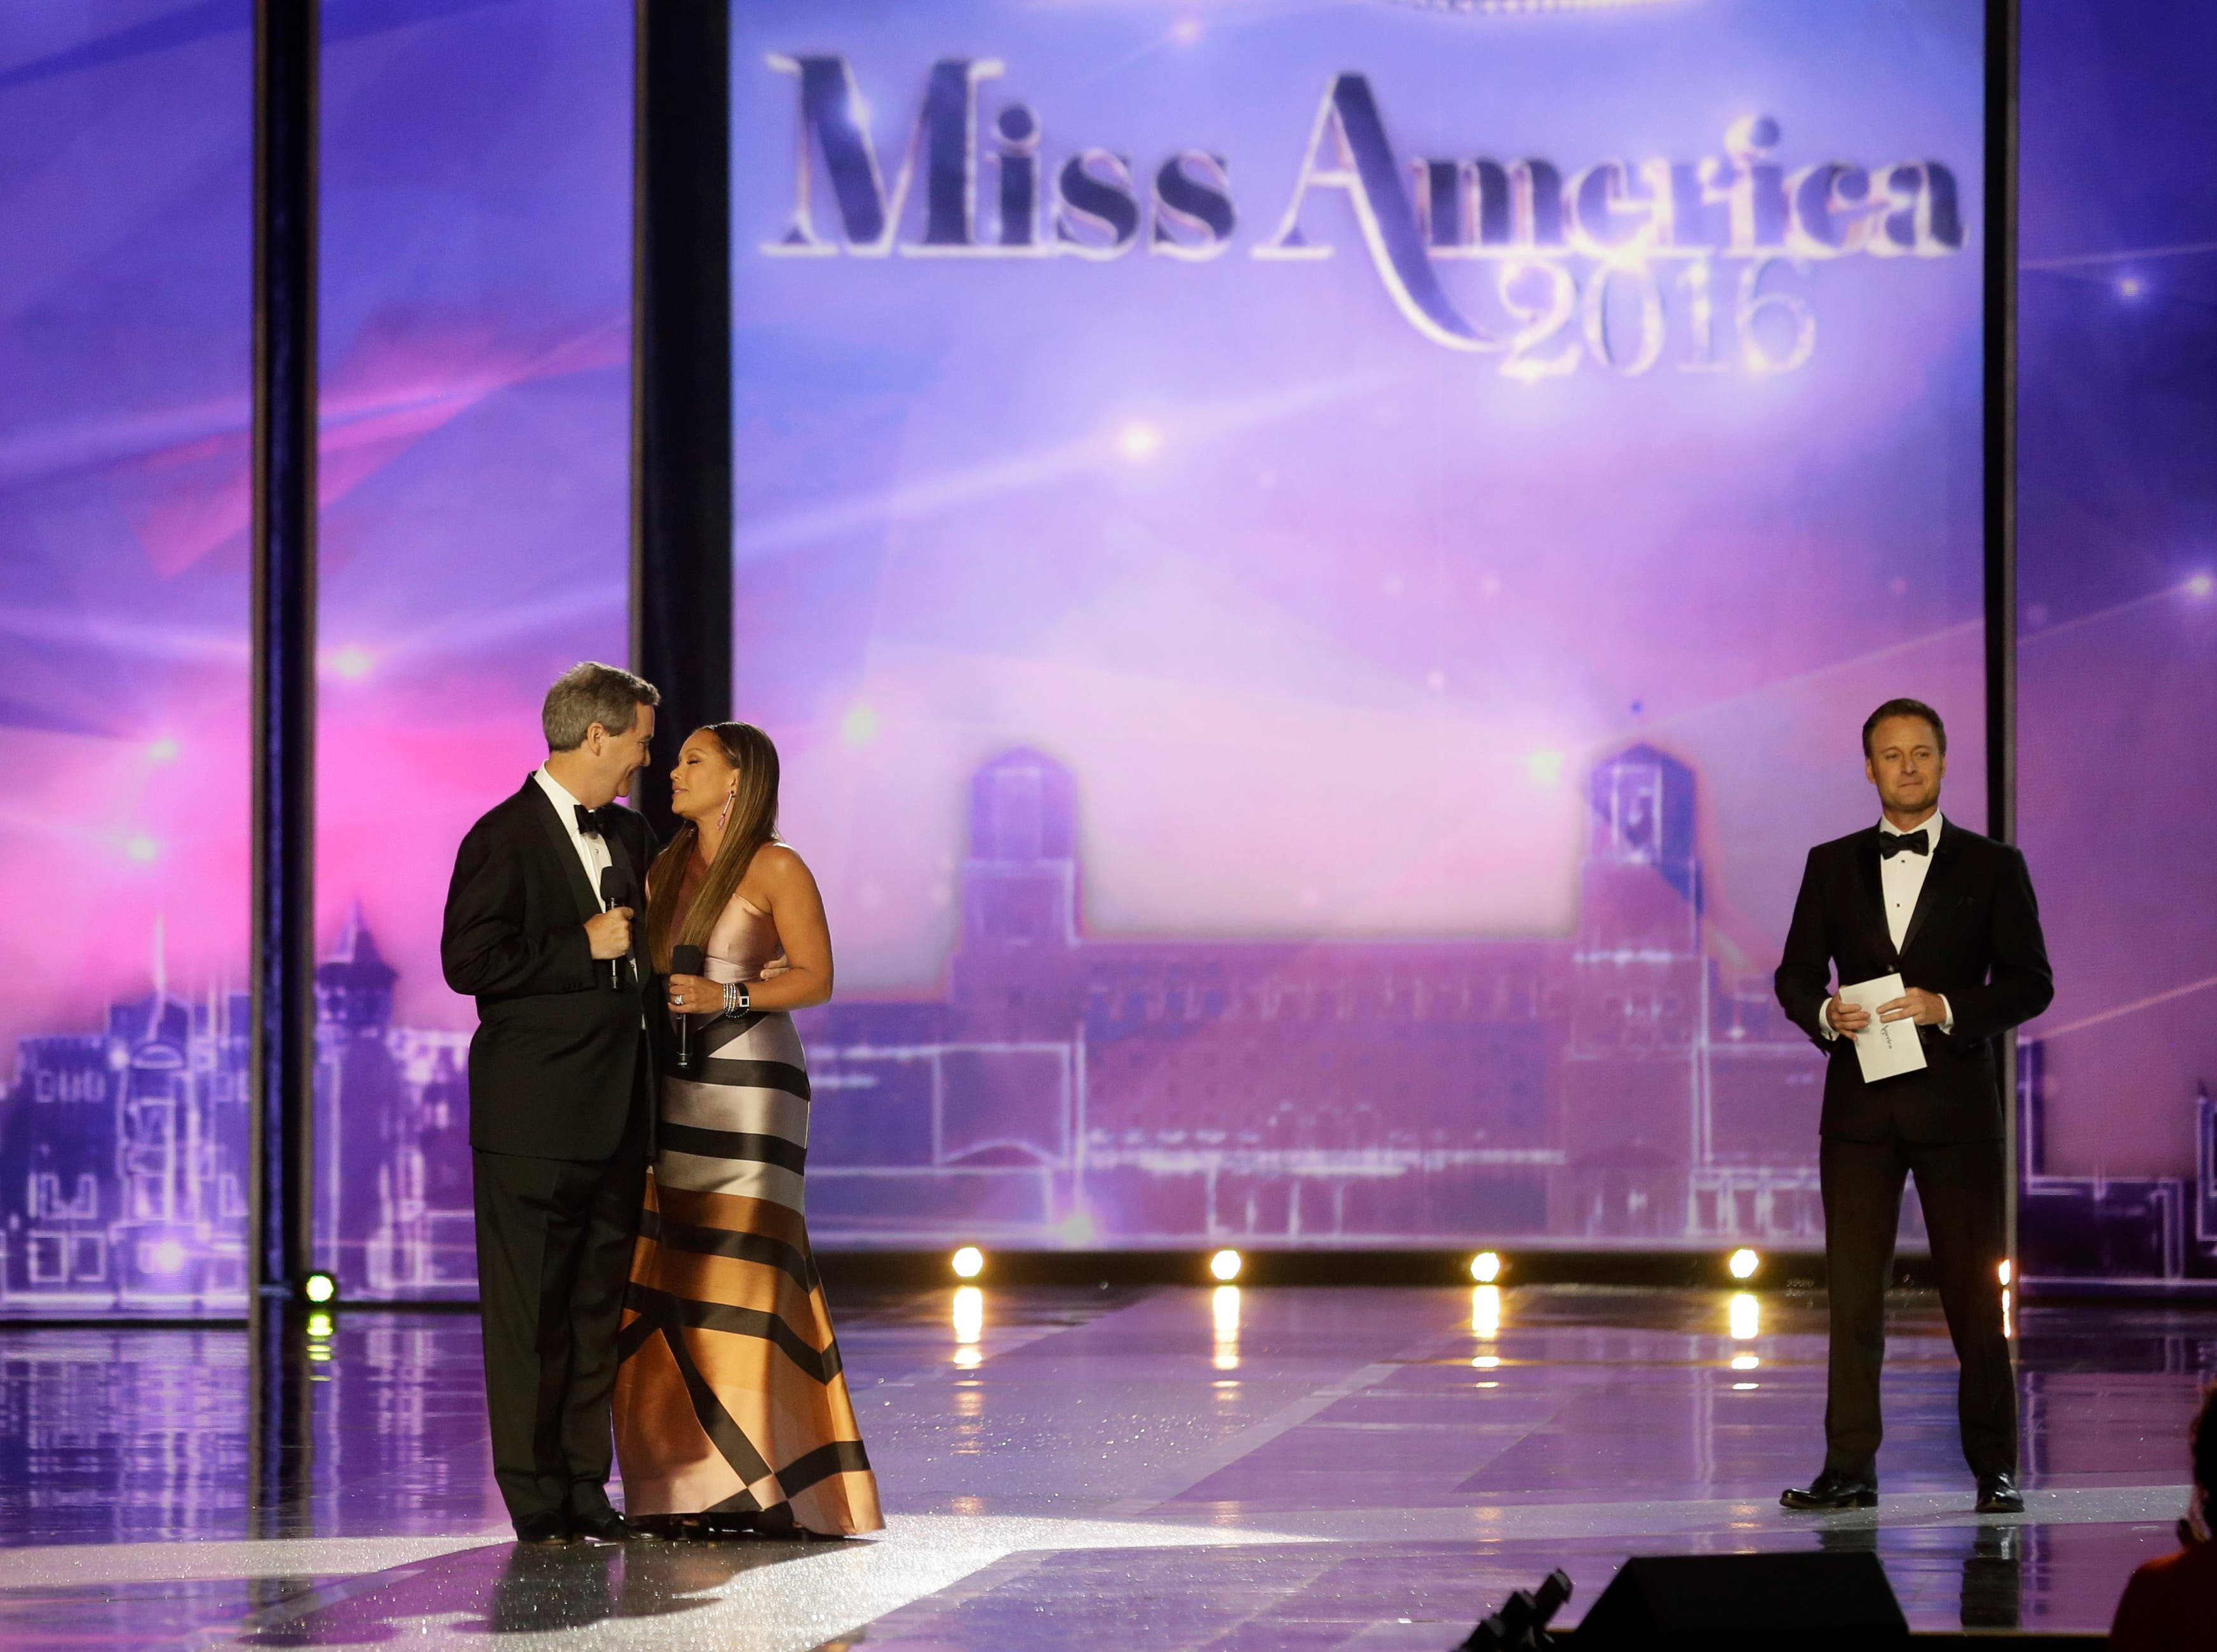 As host Chris Harrison, right, listens, Miss America's Chairman and CEO Sam Haskell III apologizes to former singer and actress Vanessa Williams, who gave up resigned her title, during the 2016 Miss America pageant, Sunday, Sept. 13, 2015, in Atlantic City